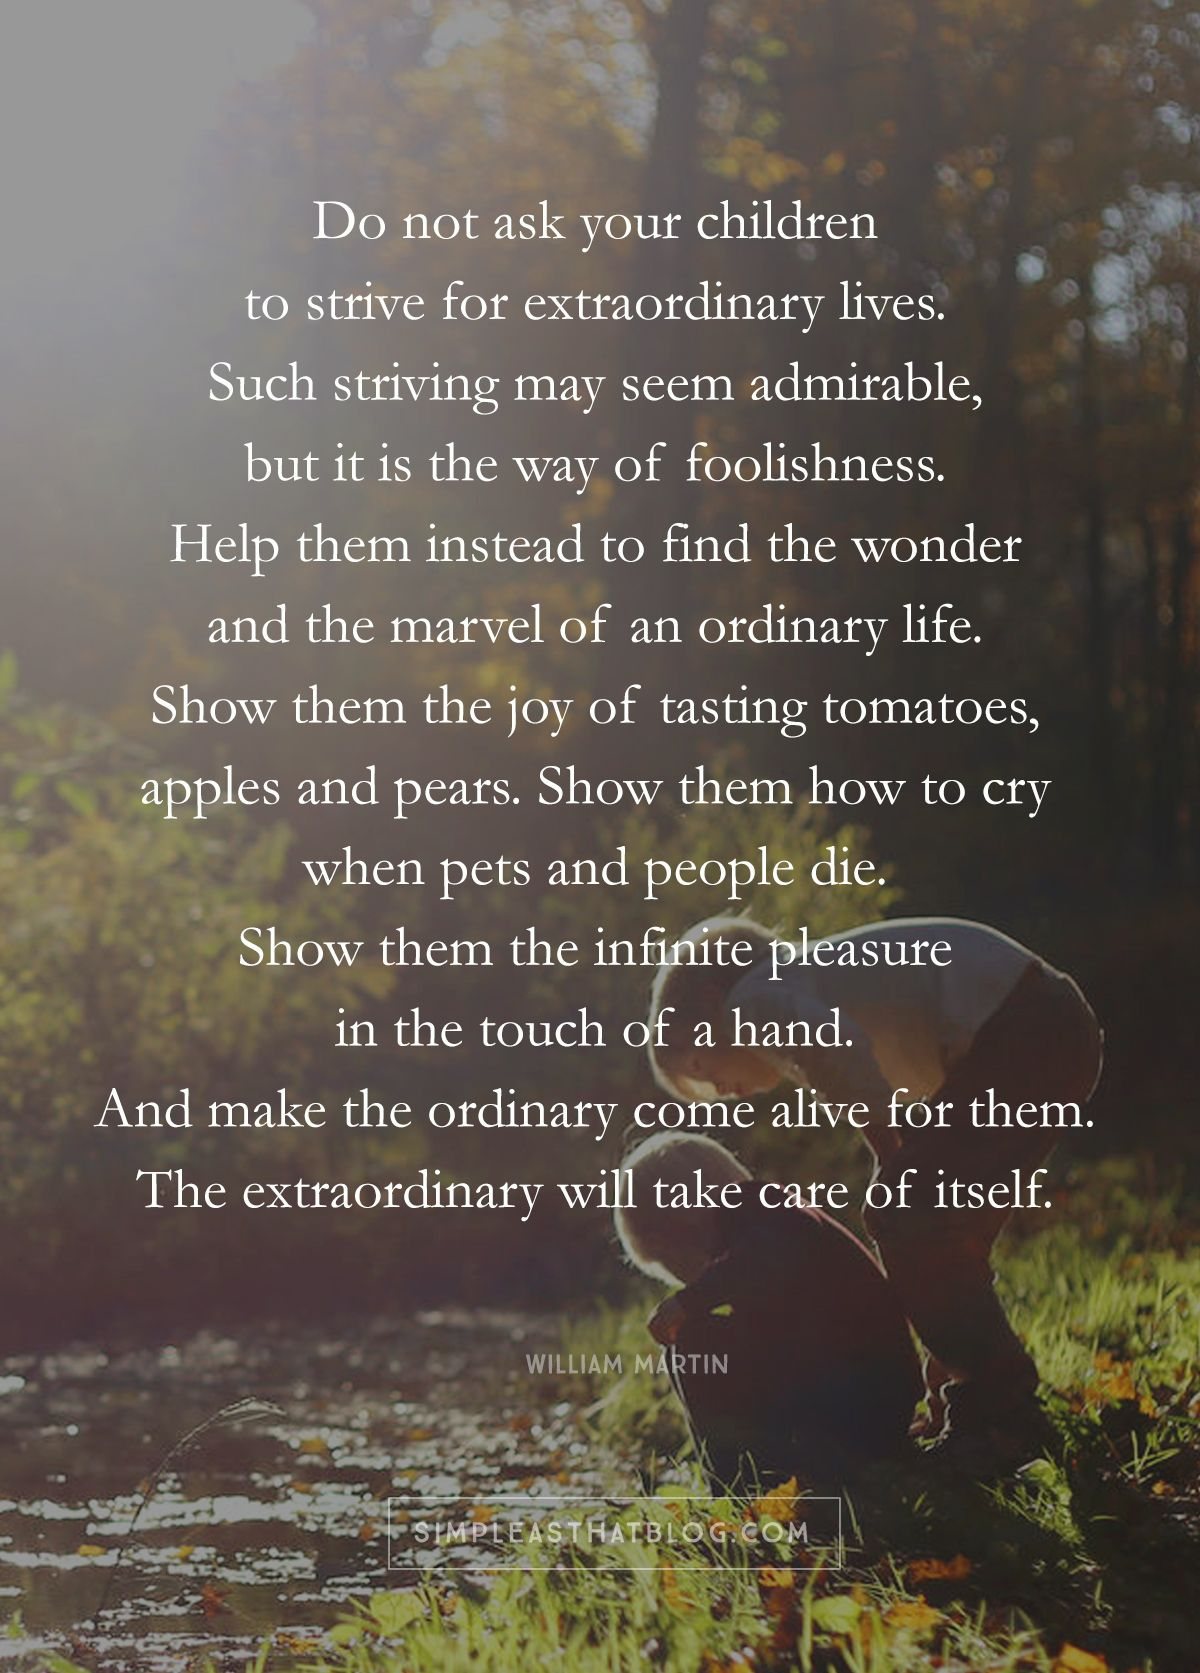 What if all I want for my kids is an ordinary life?